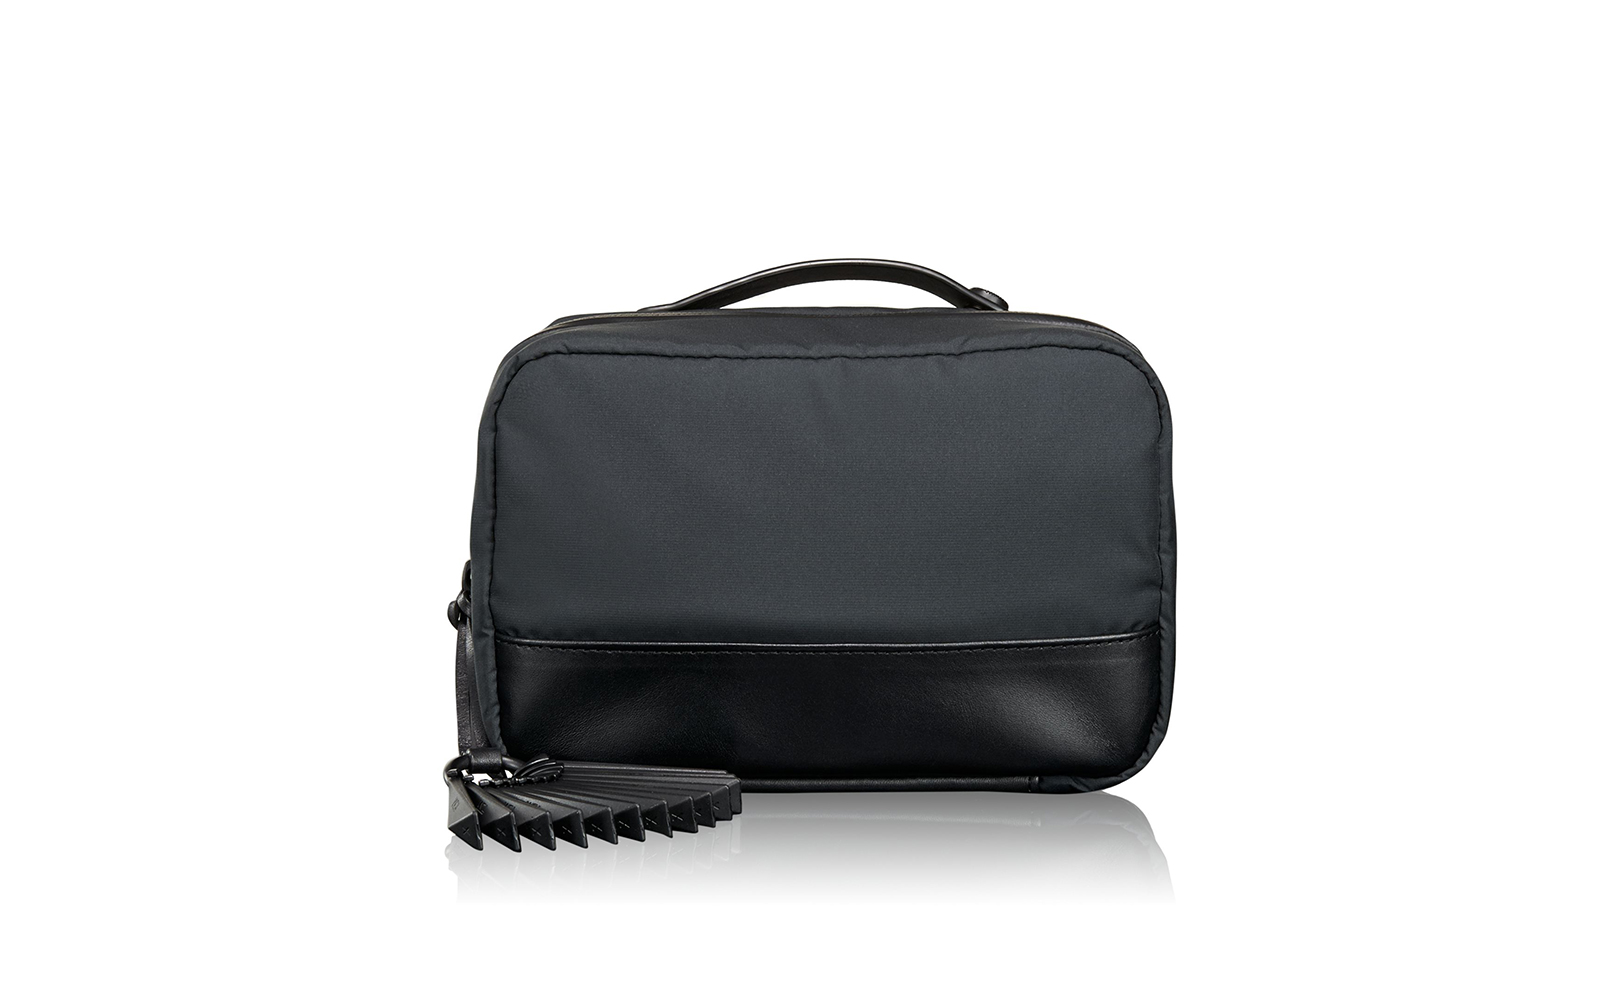 Best Travel Products: Tumi x Public School